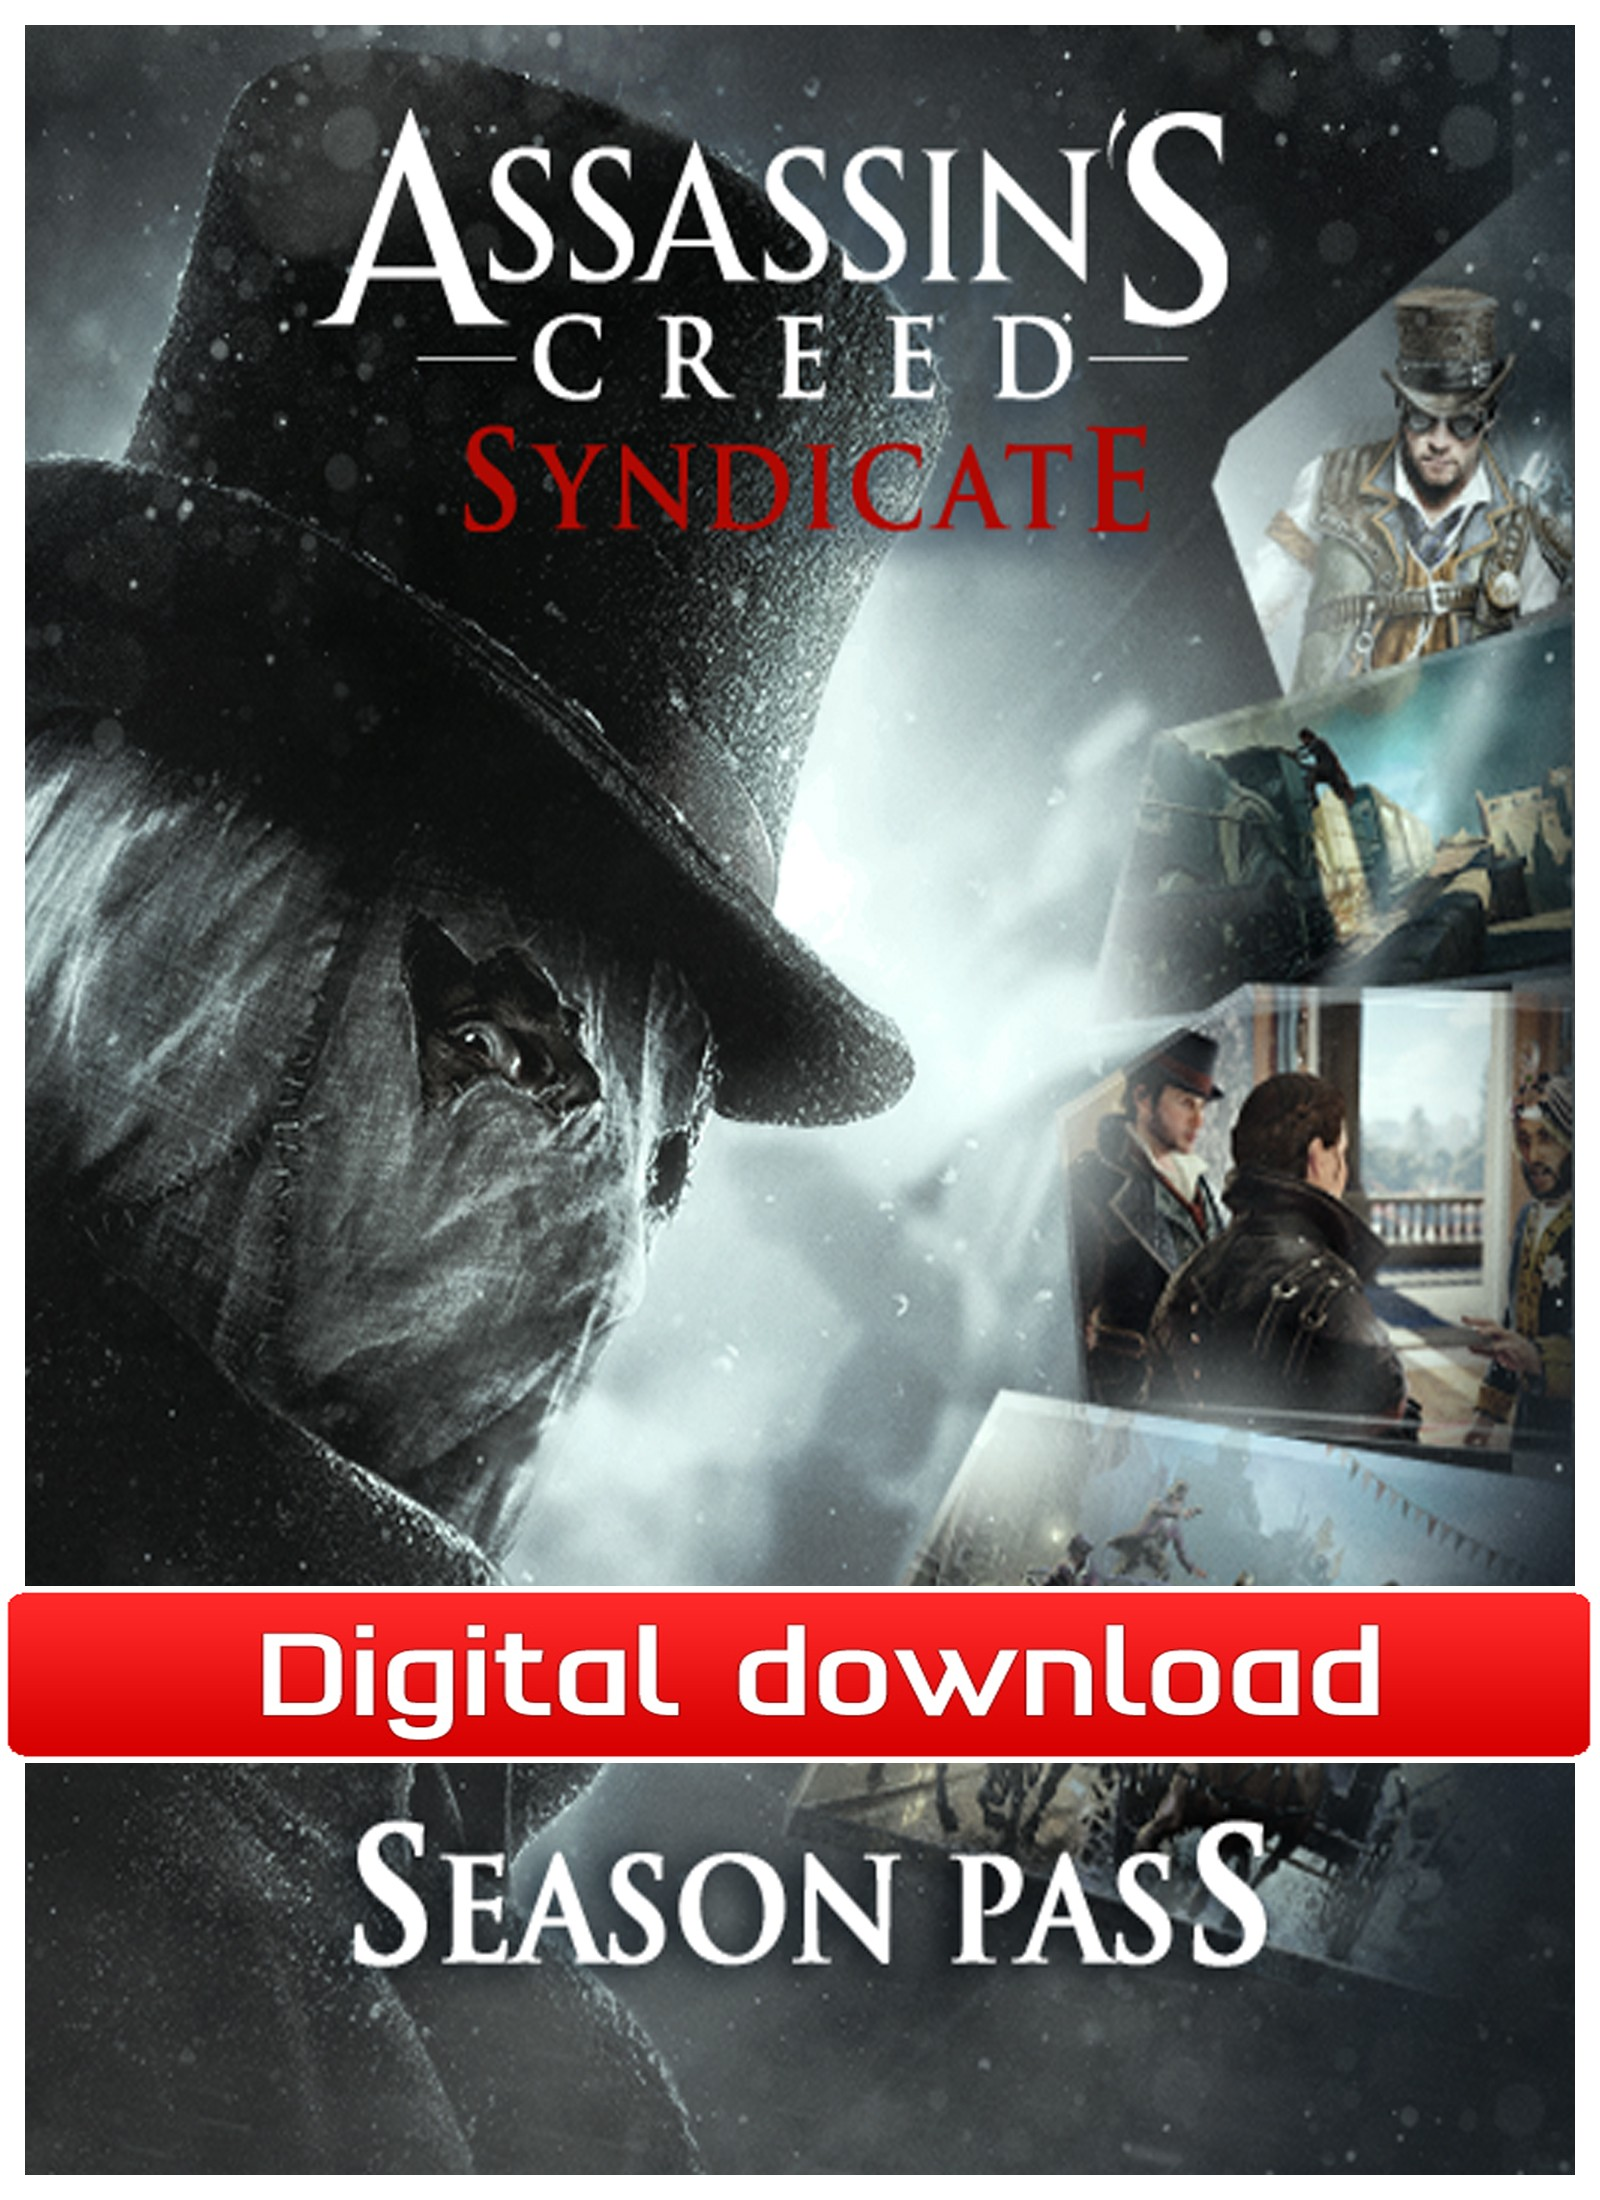 38208 : Assassin's Creed Syndicate - DLC Season Pass (PC nedl)